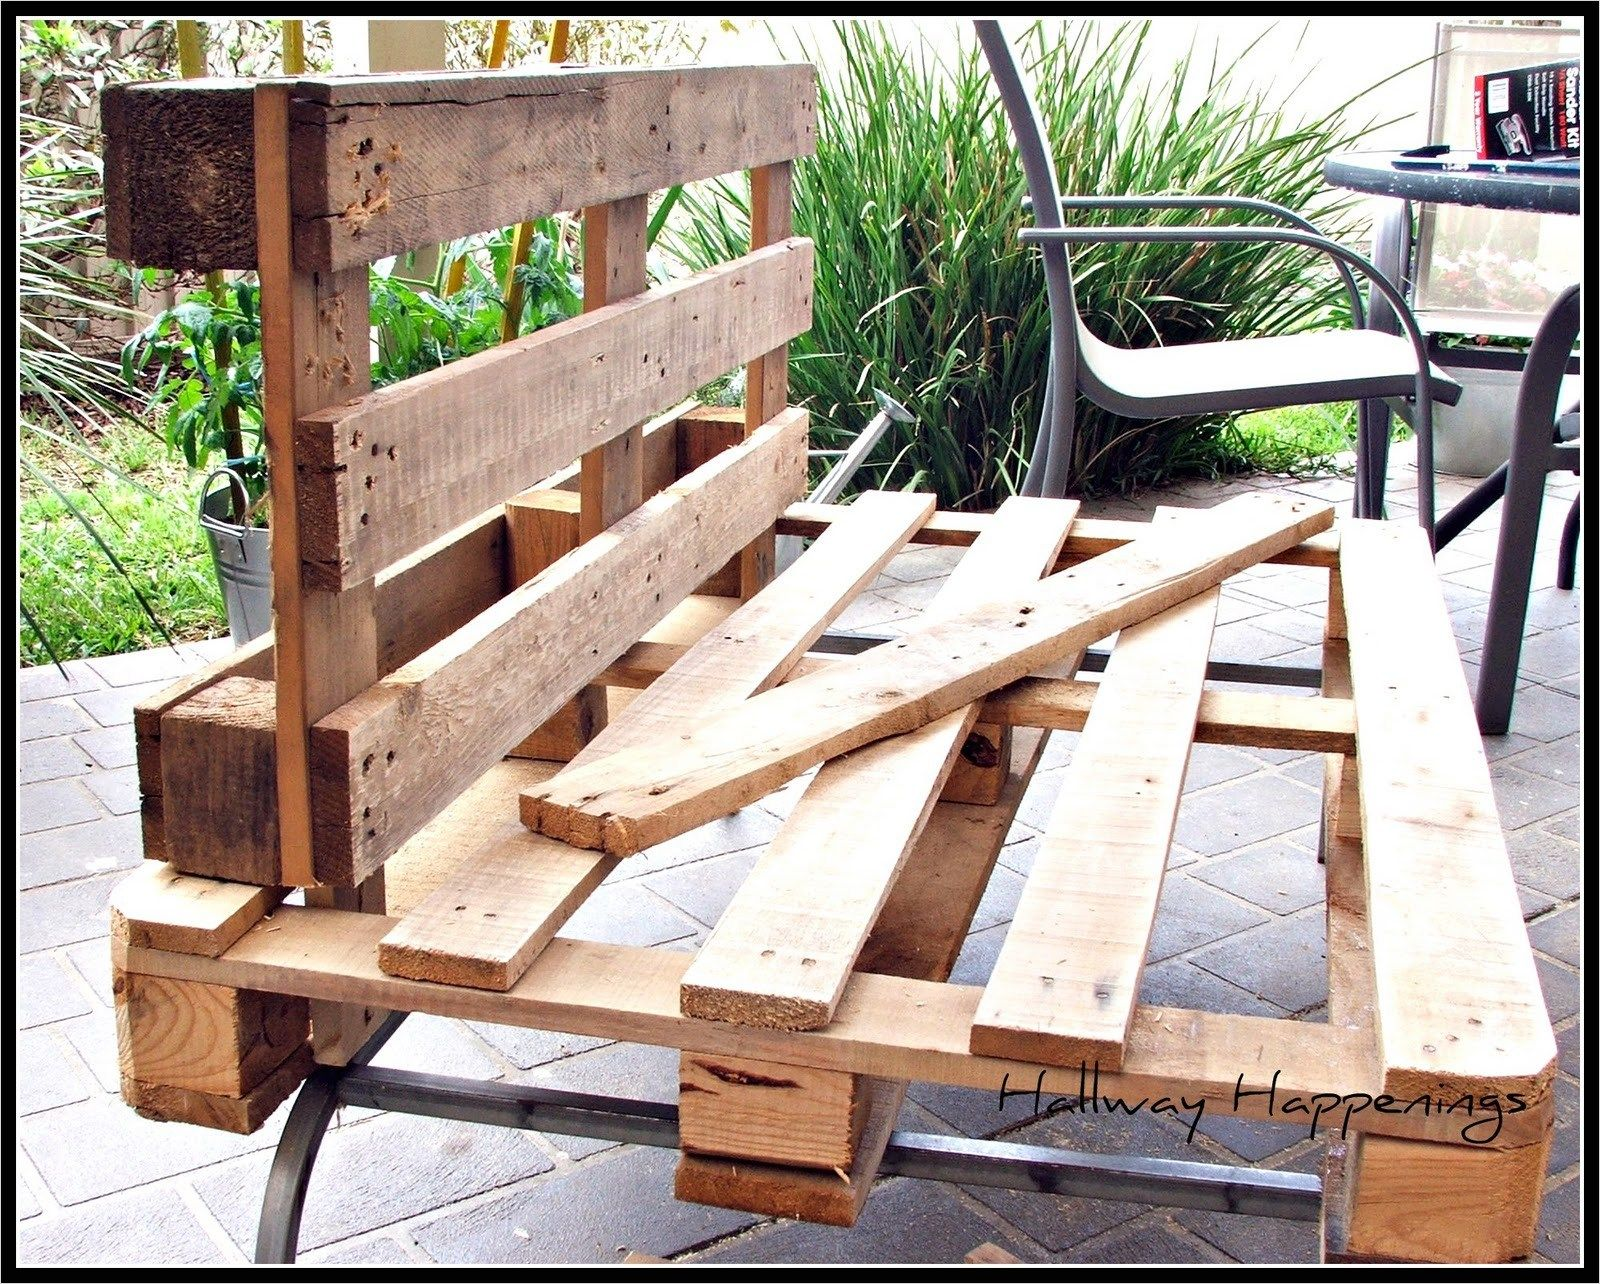 40 diy ideas outdoor furniture made from pallets | home outdoor